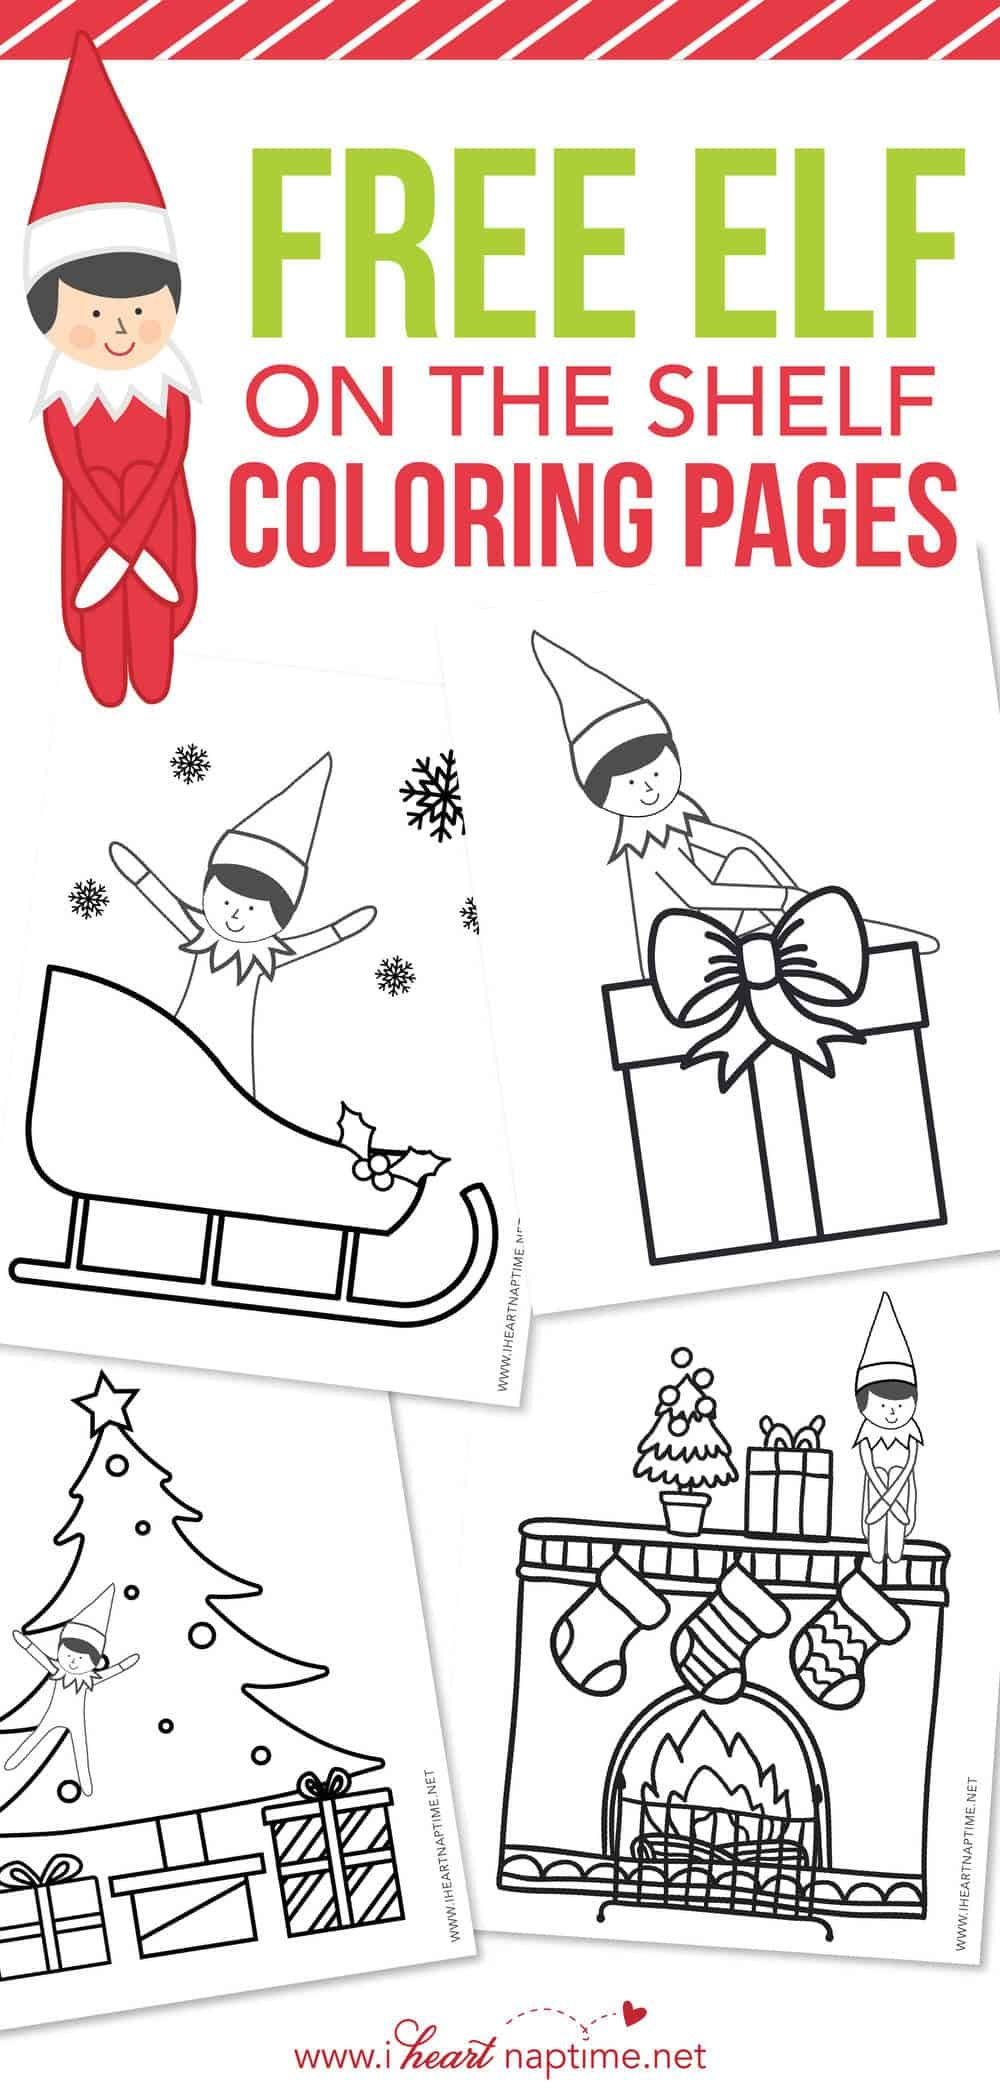 Free Elf On The Shelf Coloring Pages I Heart Naptime Coloring Pages Free Christmas Coloring Pages Printable Coloring Pages